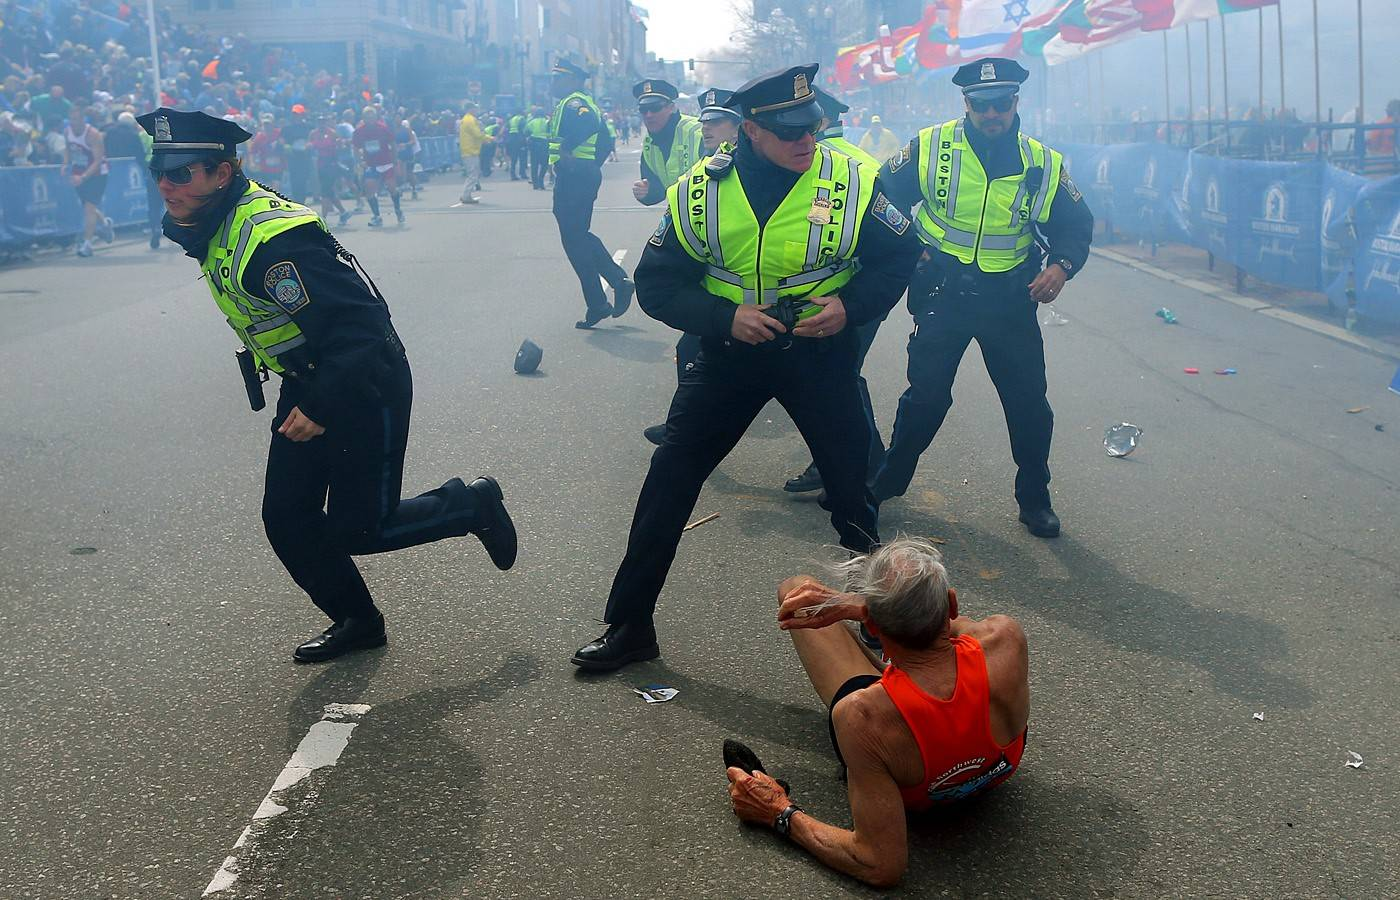 Bill Iffrig, 78, was knocked to the ground near the Boston Marathon finish line and police officers scrambled to help after the second explosion.